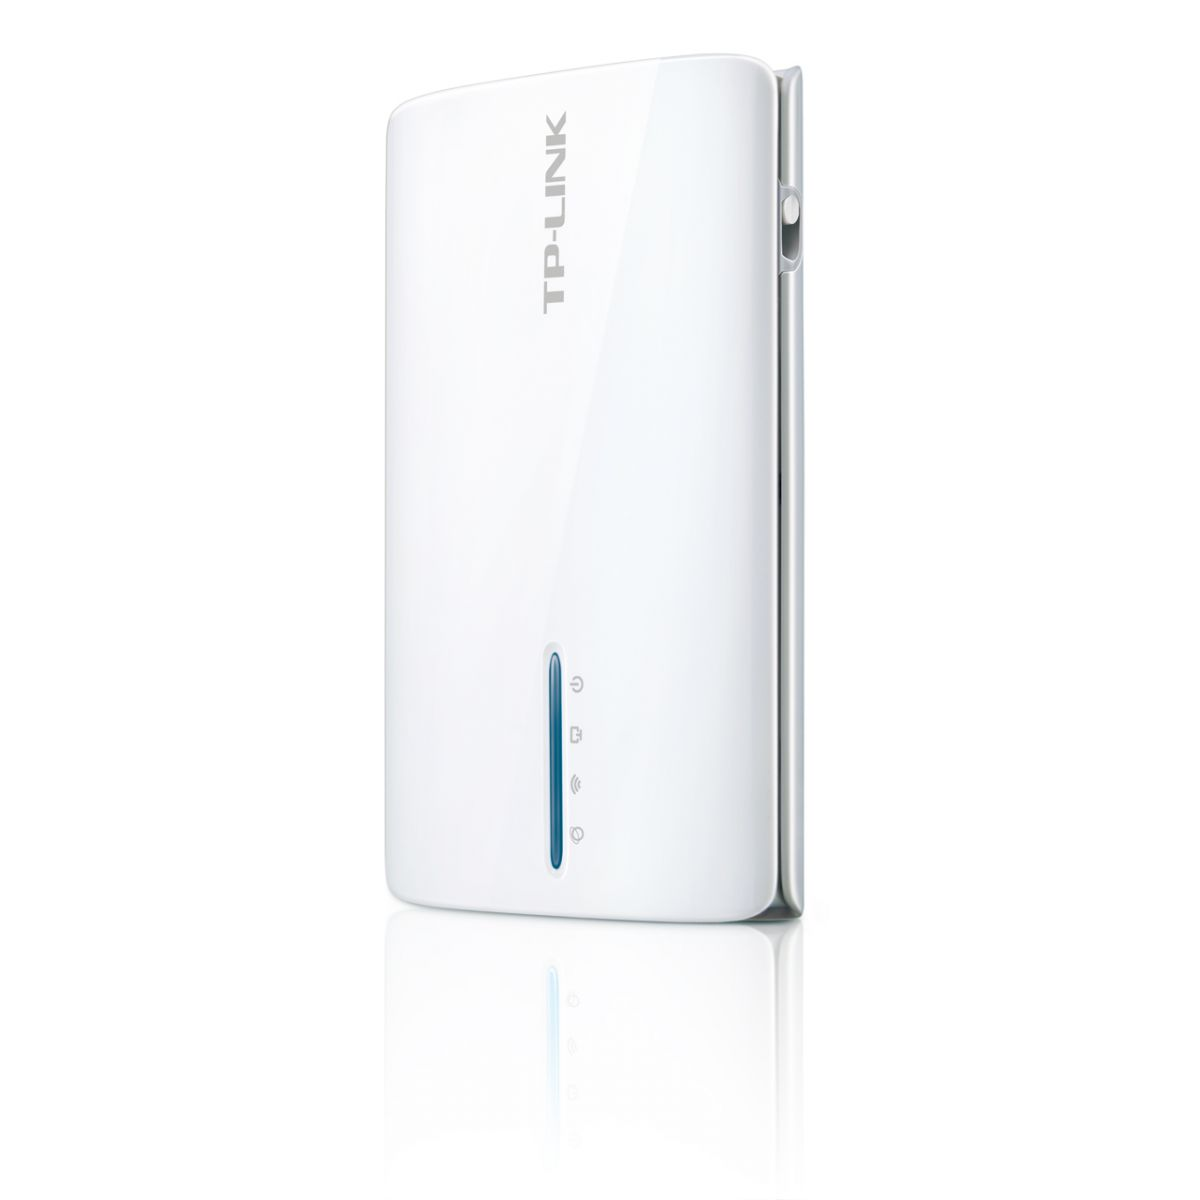 Roteador Wireless N 3G 3.75G TL-MR3040 TP-Link  - ShopNoroeste.com.br